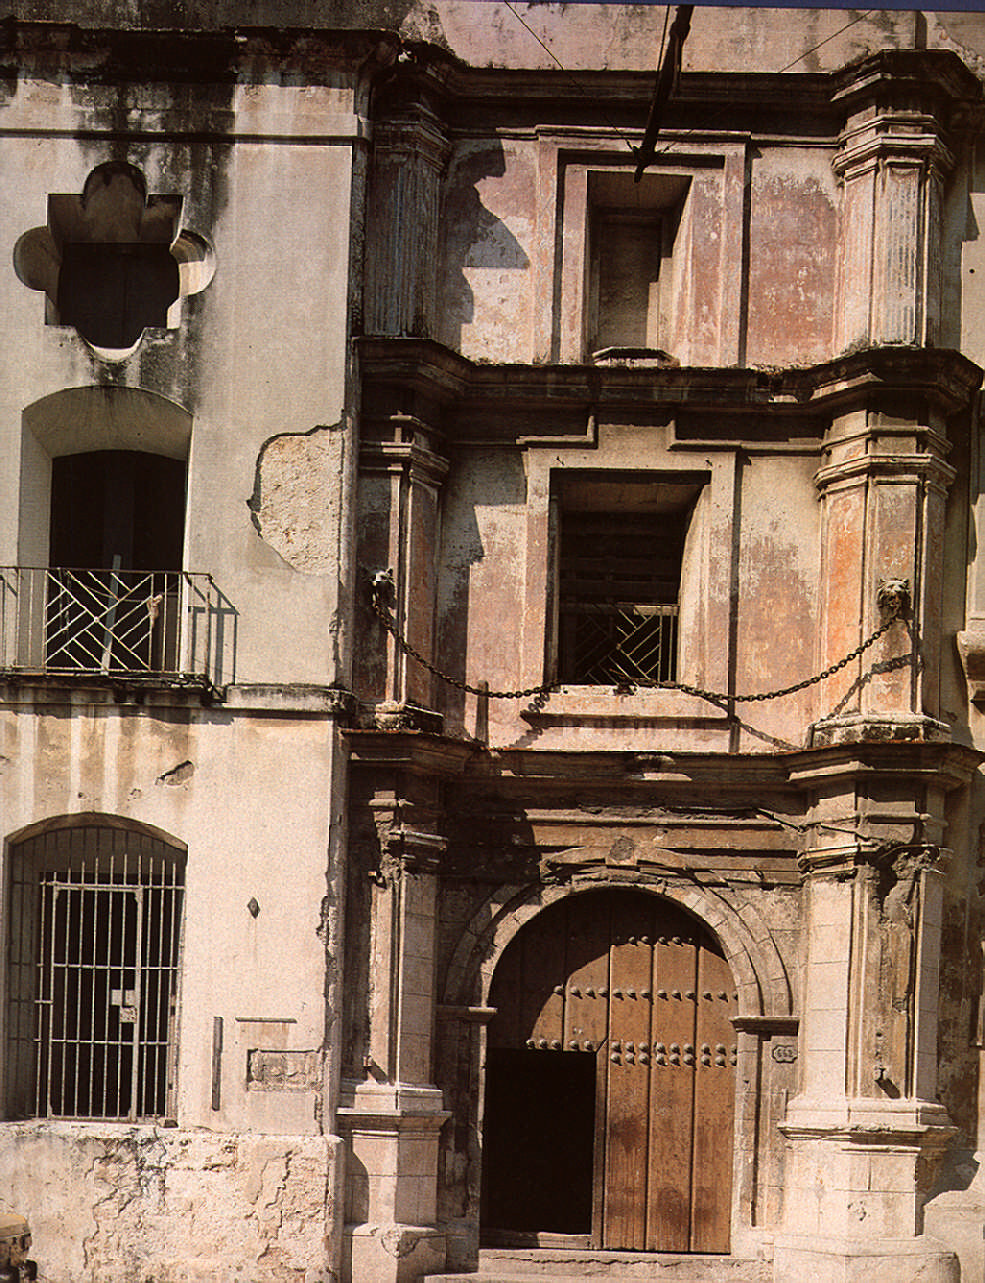 The main entrance of El Convento de Belén. Built in the early 18th century and now being restored, the covent also serves as living quarters for specialist craftsmen working on the city's buildings. Photograph by Martin Charles